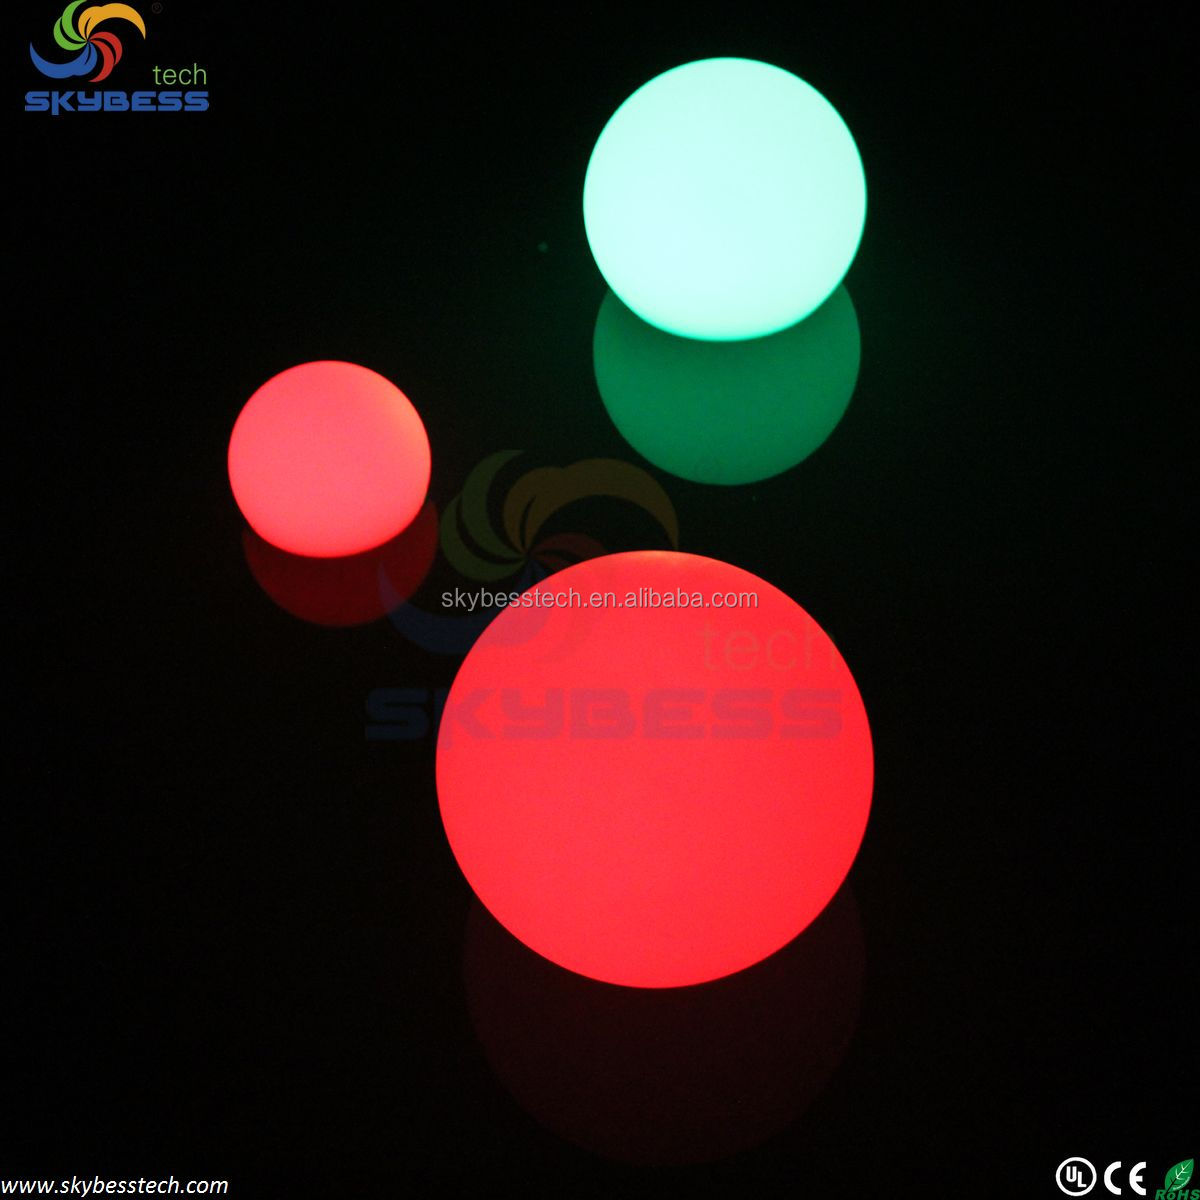 yarn light balls rgb color changing led ball led sphere led orbs with